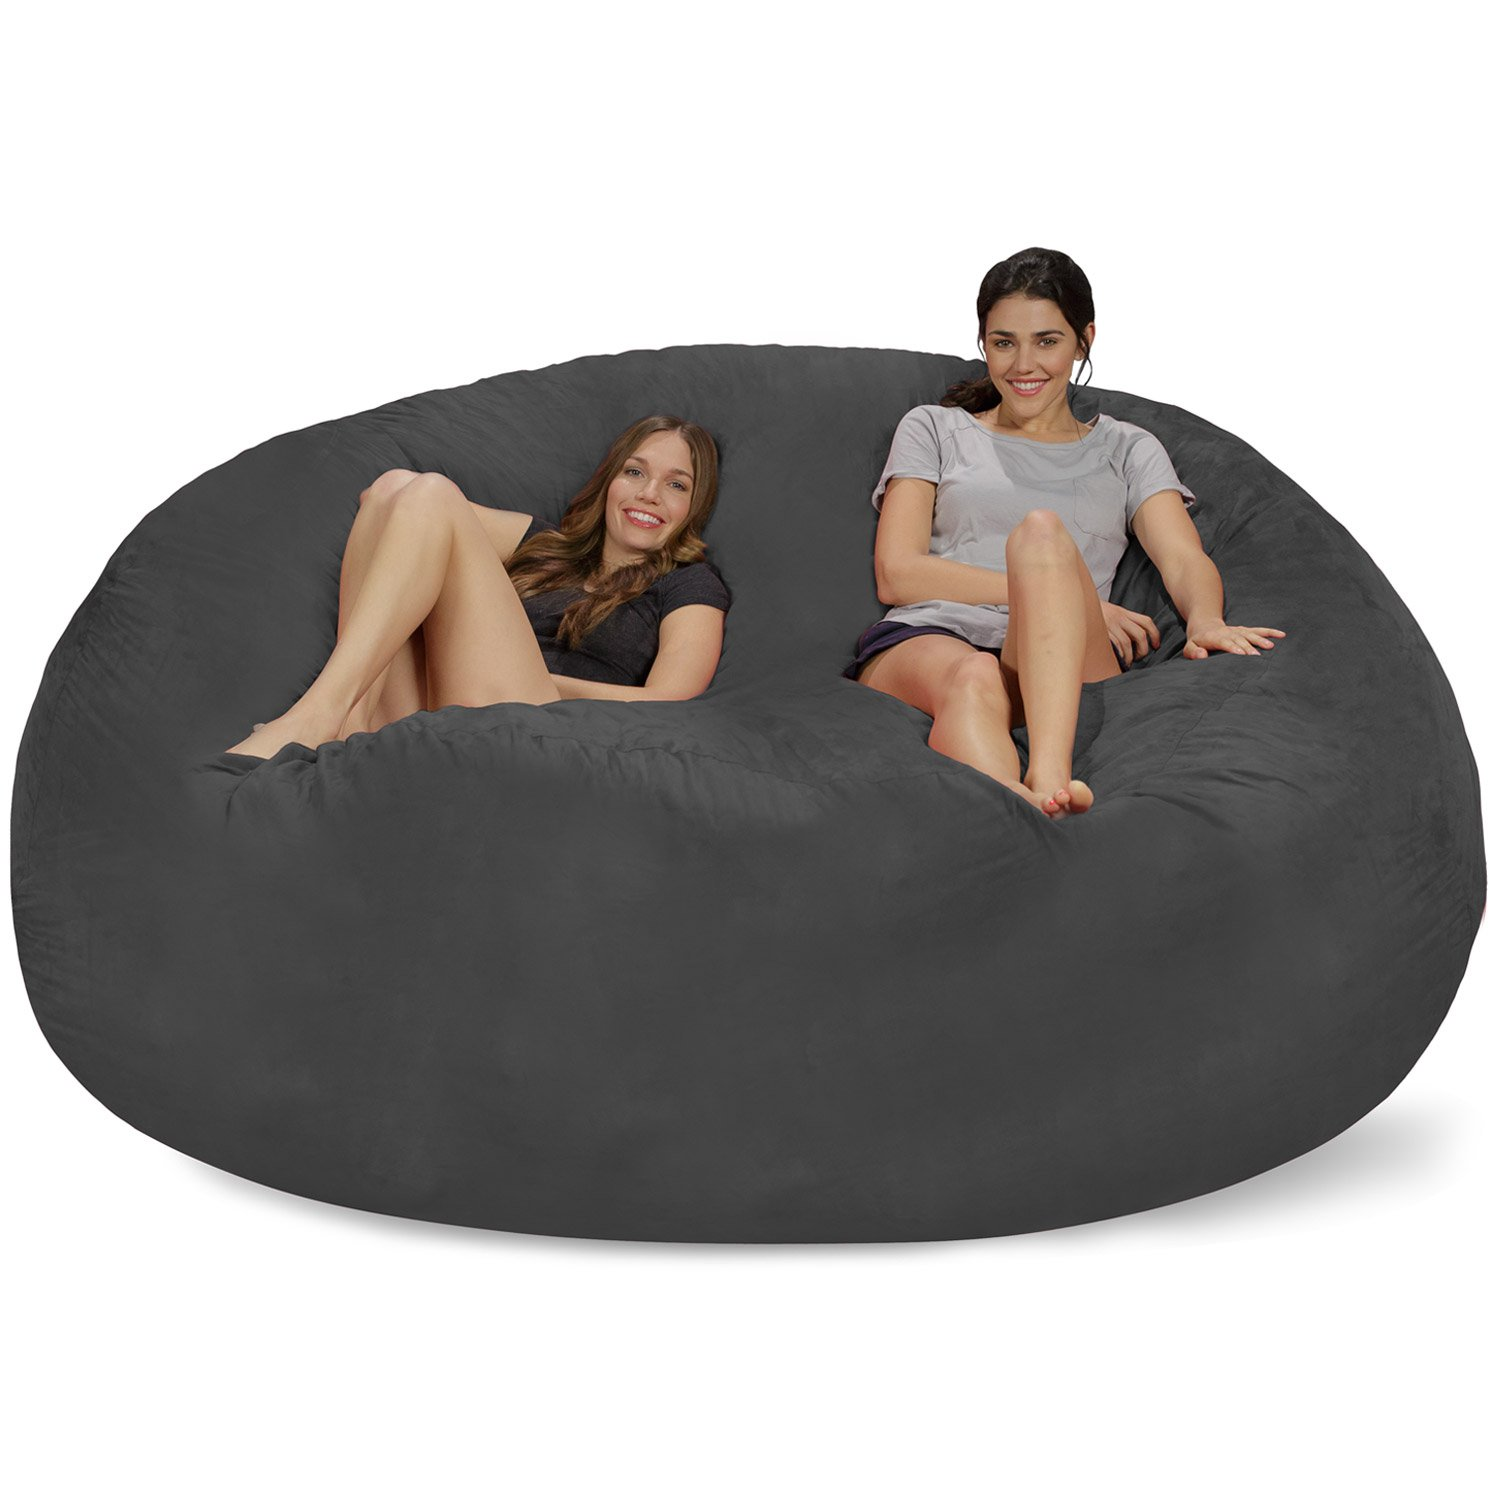 Chill Sack Bean Bag Chair: Giant 8' Memory Foam Furniture Bean Bag - Big Sofa with Soft Micro Fiber Cover - Charcoal by Chill Sack